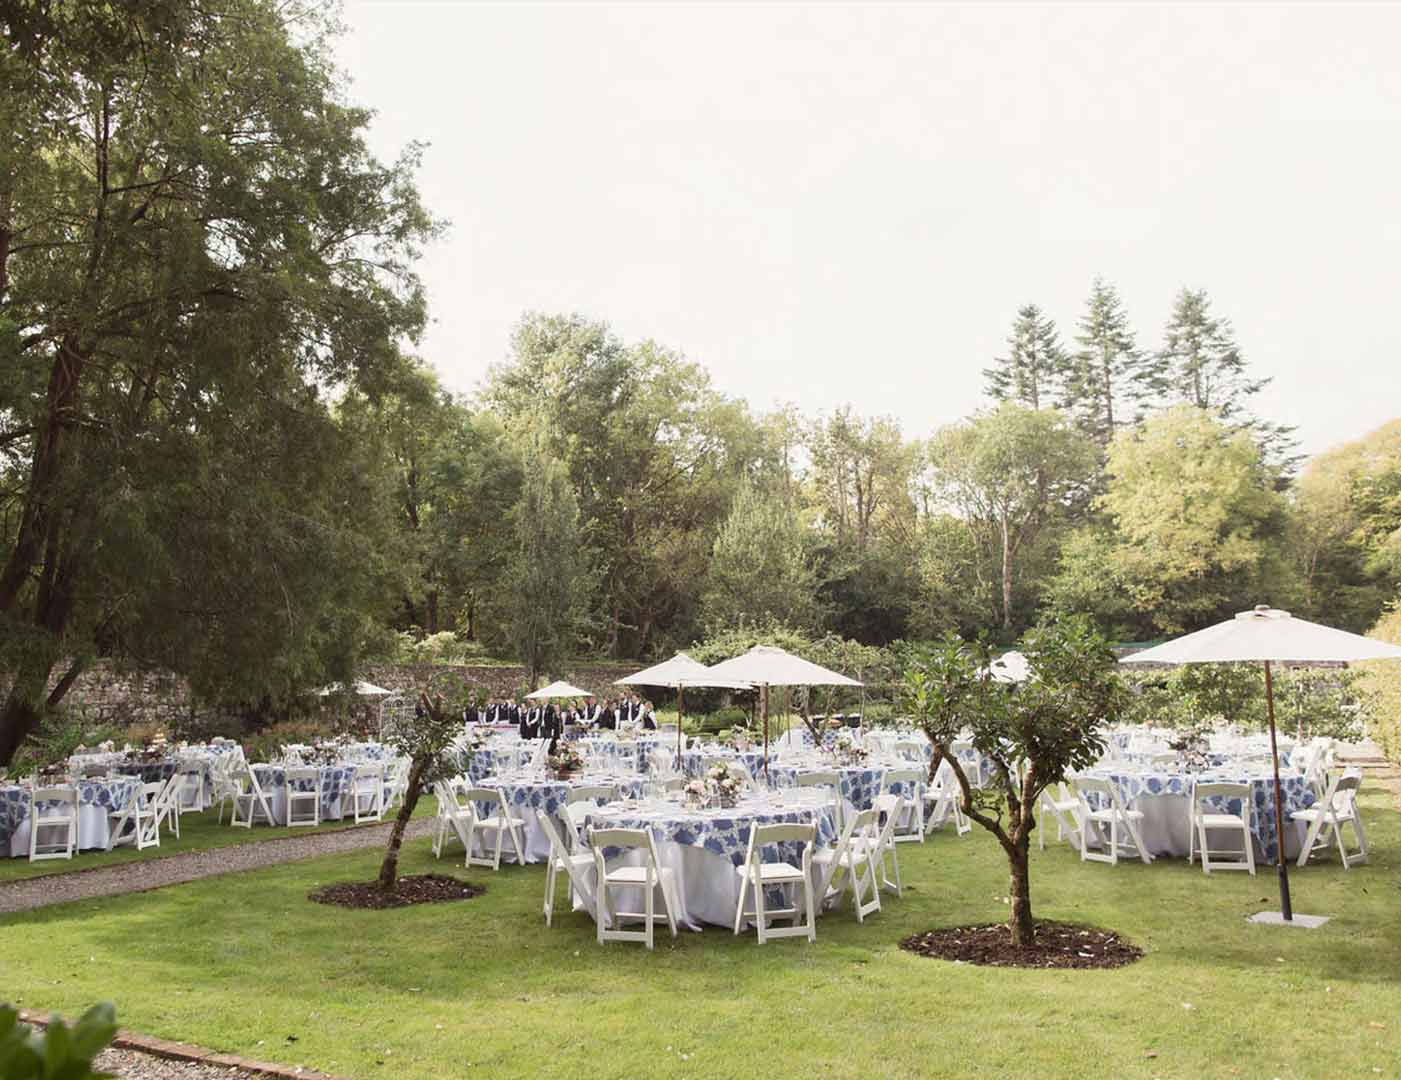 Ashford Castle, Marquee ceremony, Event planner in Ireland, Wedding Planner in Ireland, Destination Weddings, Olivia Buckley International